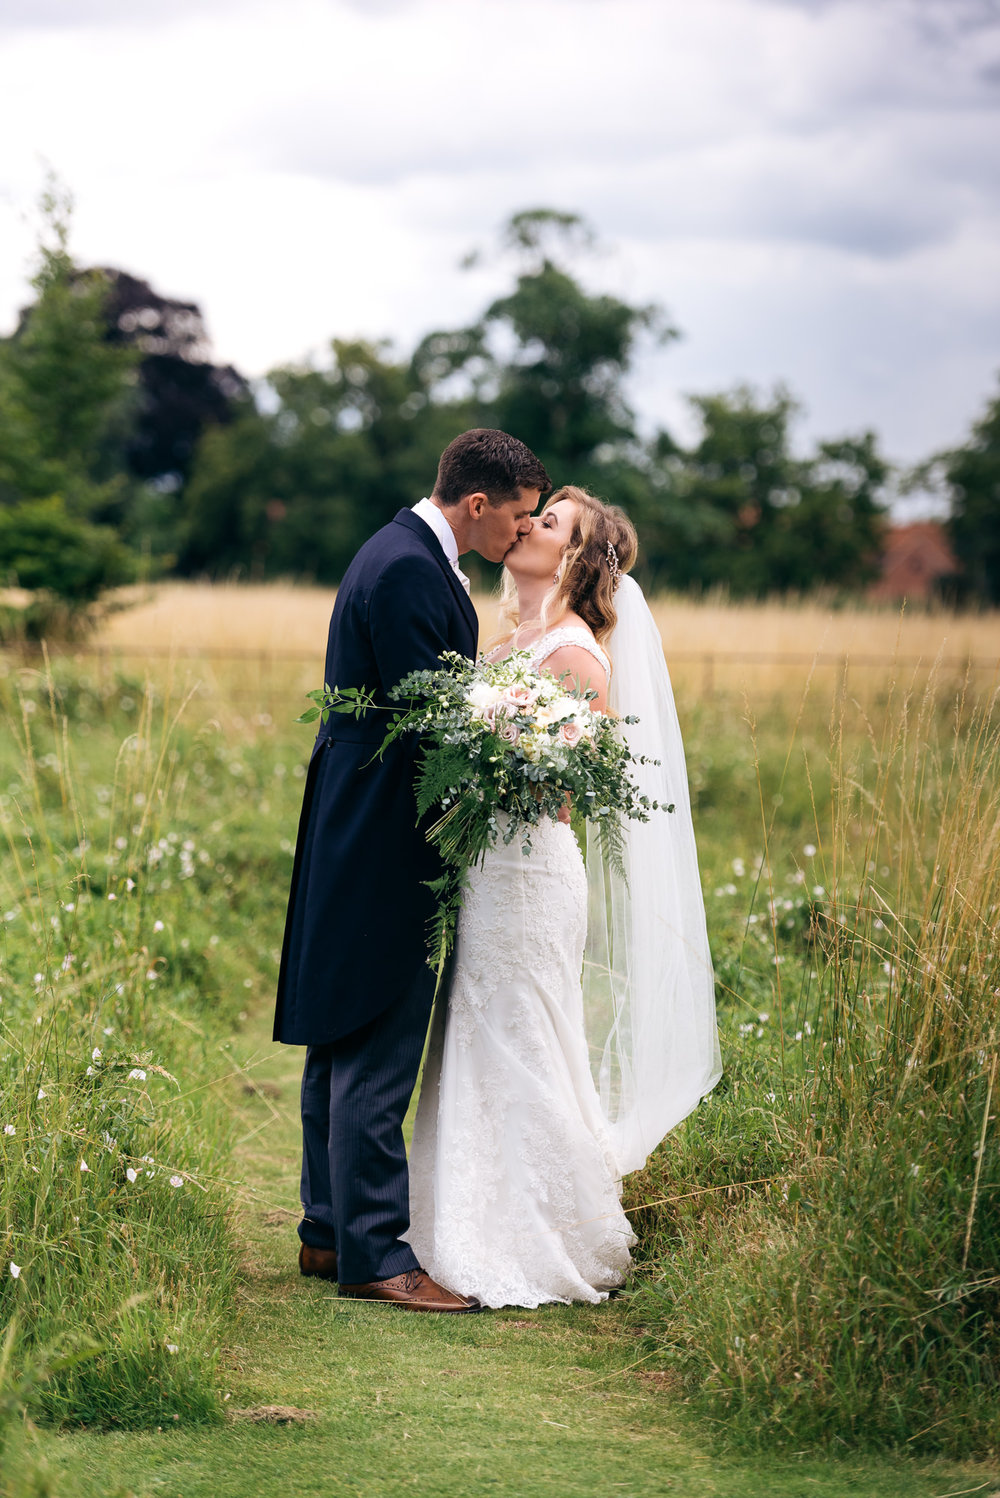 Bride and groom portrait at Narborough Hall Gardens Wedding